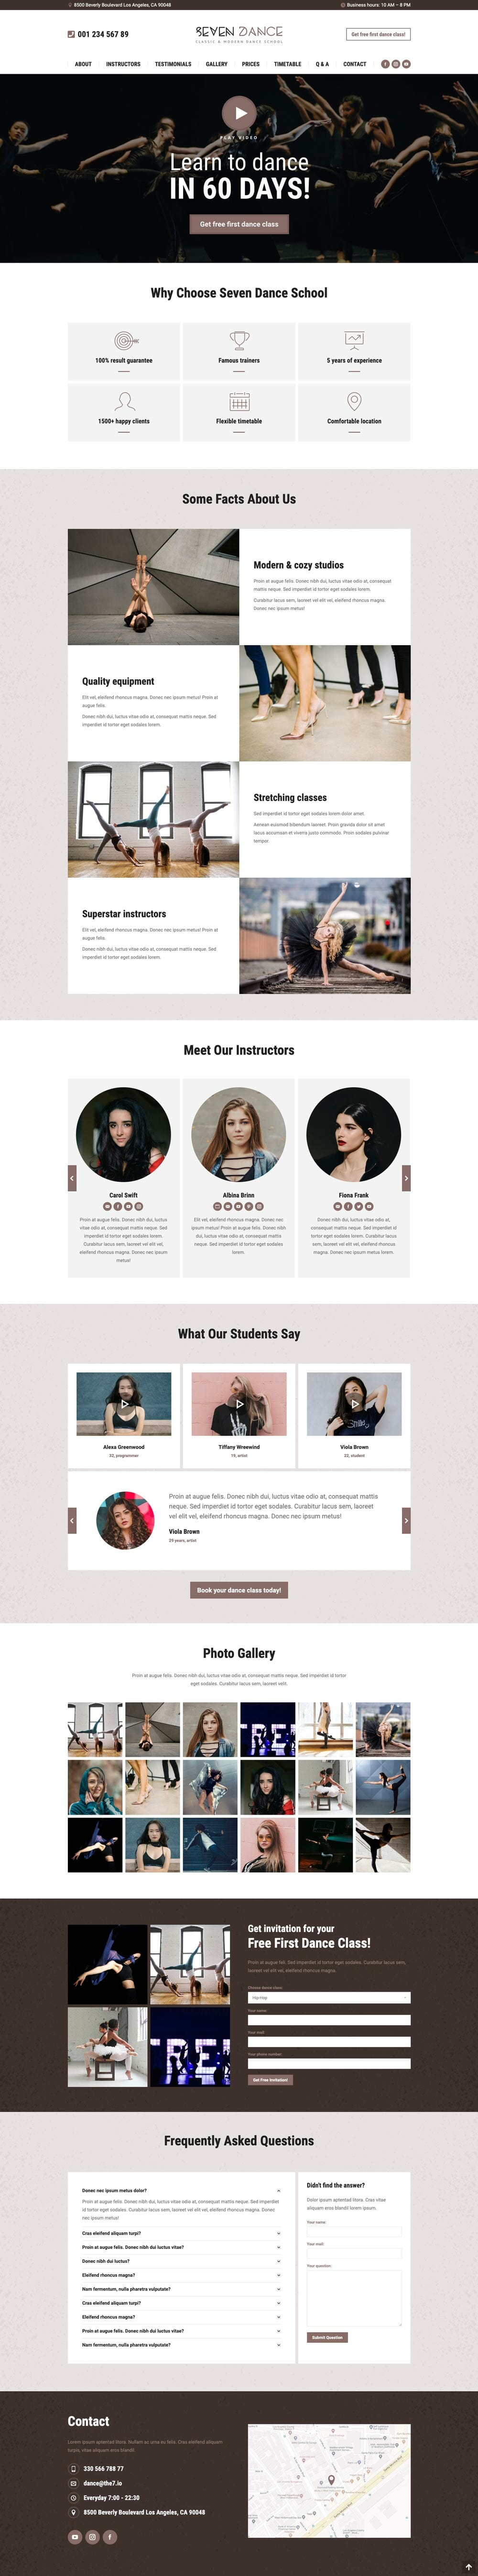 onepage-personal-template-sample-design6